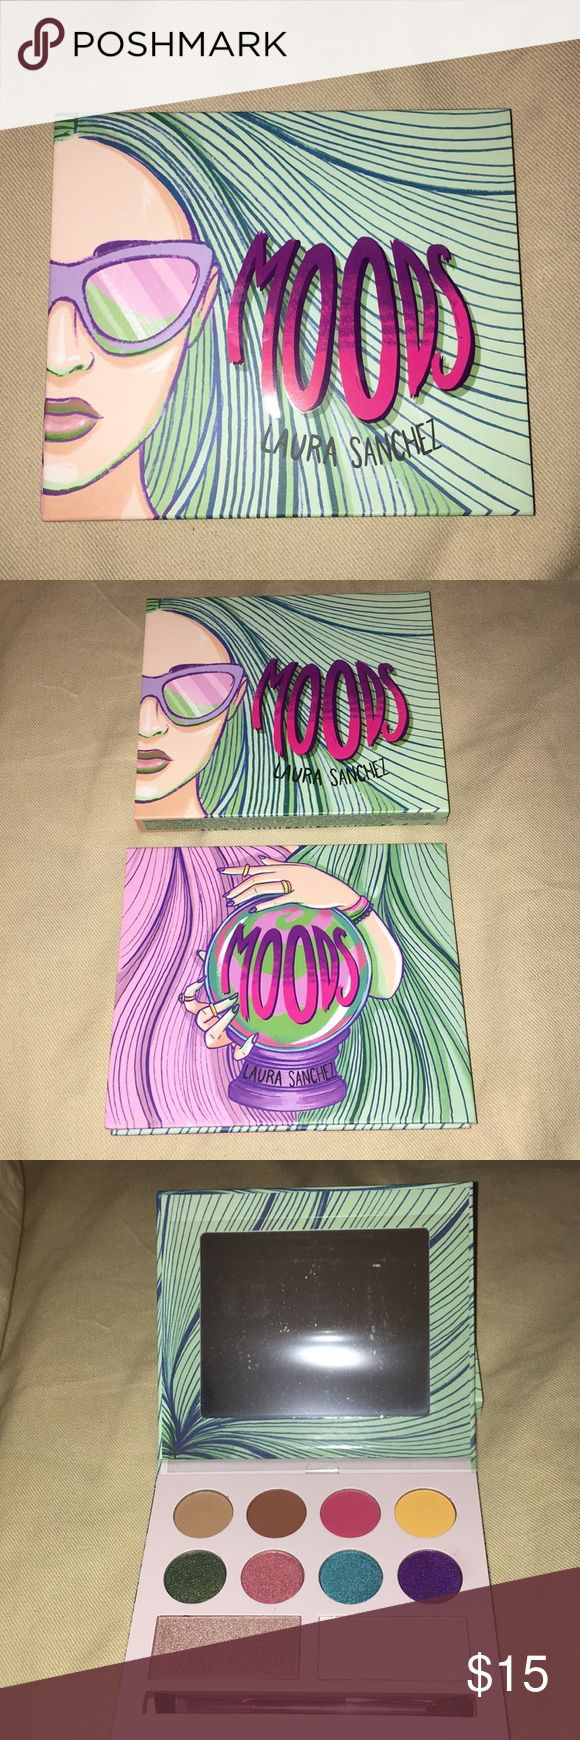 BNIB Moods by Laura Sanchez Full Size Palette Brand New In